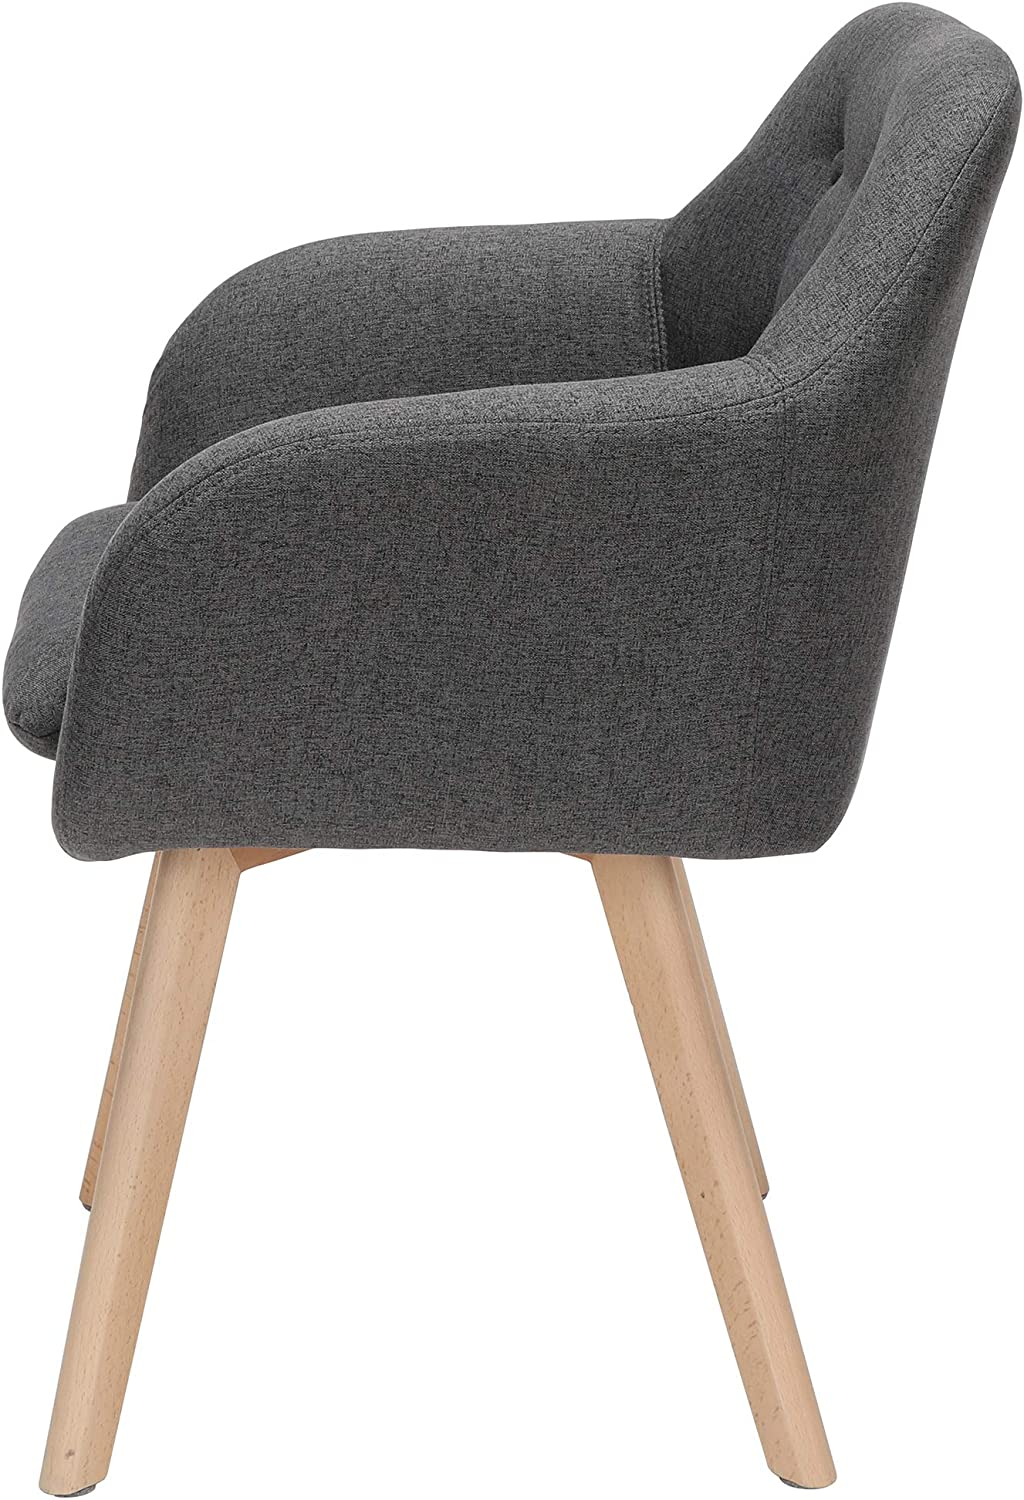 OFM 161 Collection Mid Century Modern 2 Pack Tufted Fabric Accent Chair with Arms Solid Beechwood Legs in Beige Dining Chair